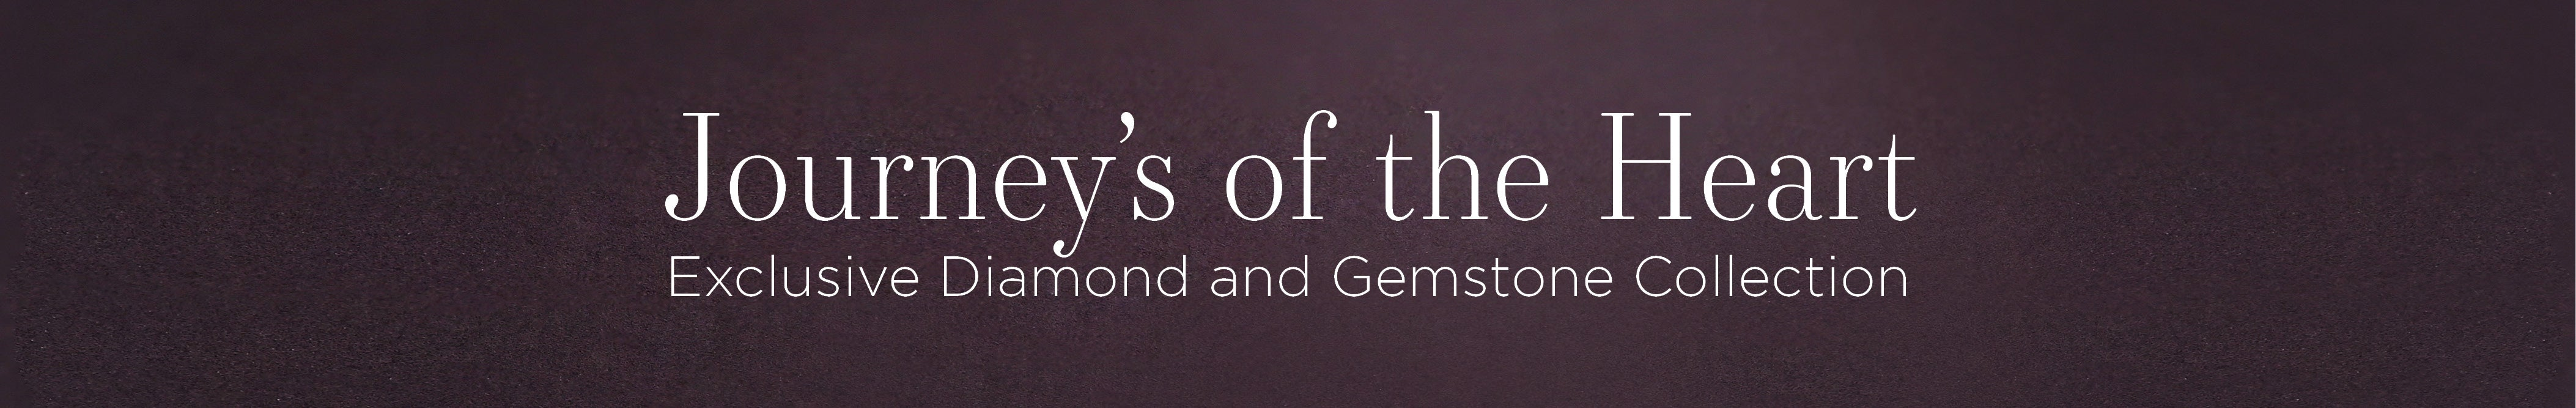 Journeys of the Heart title banner